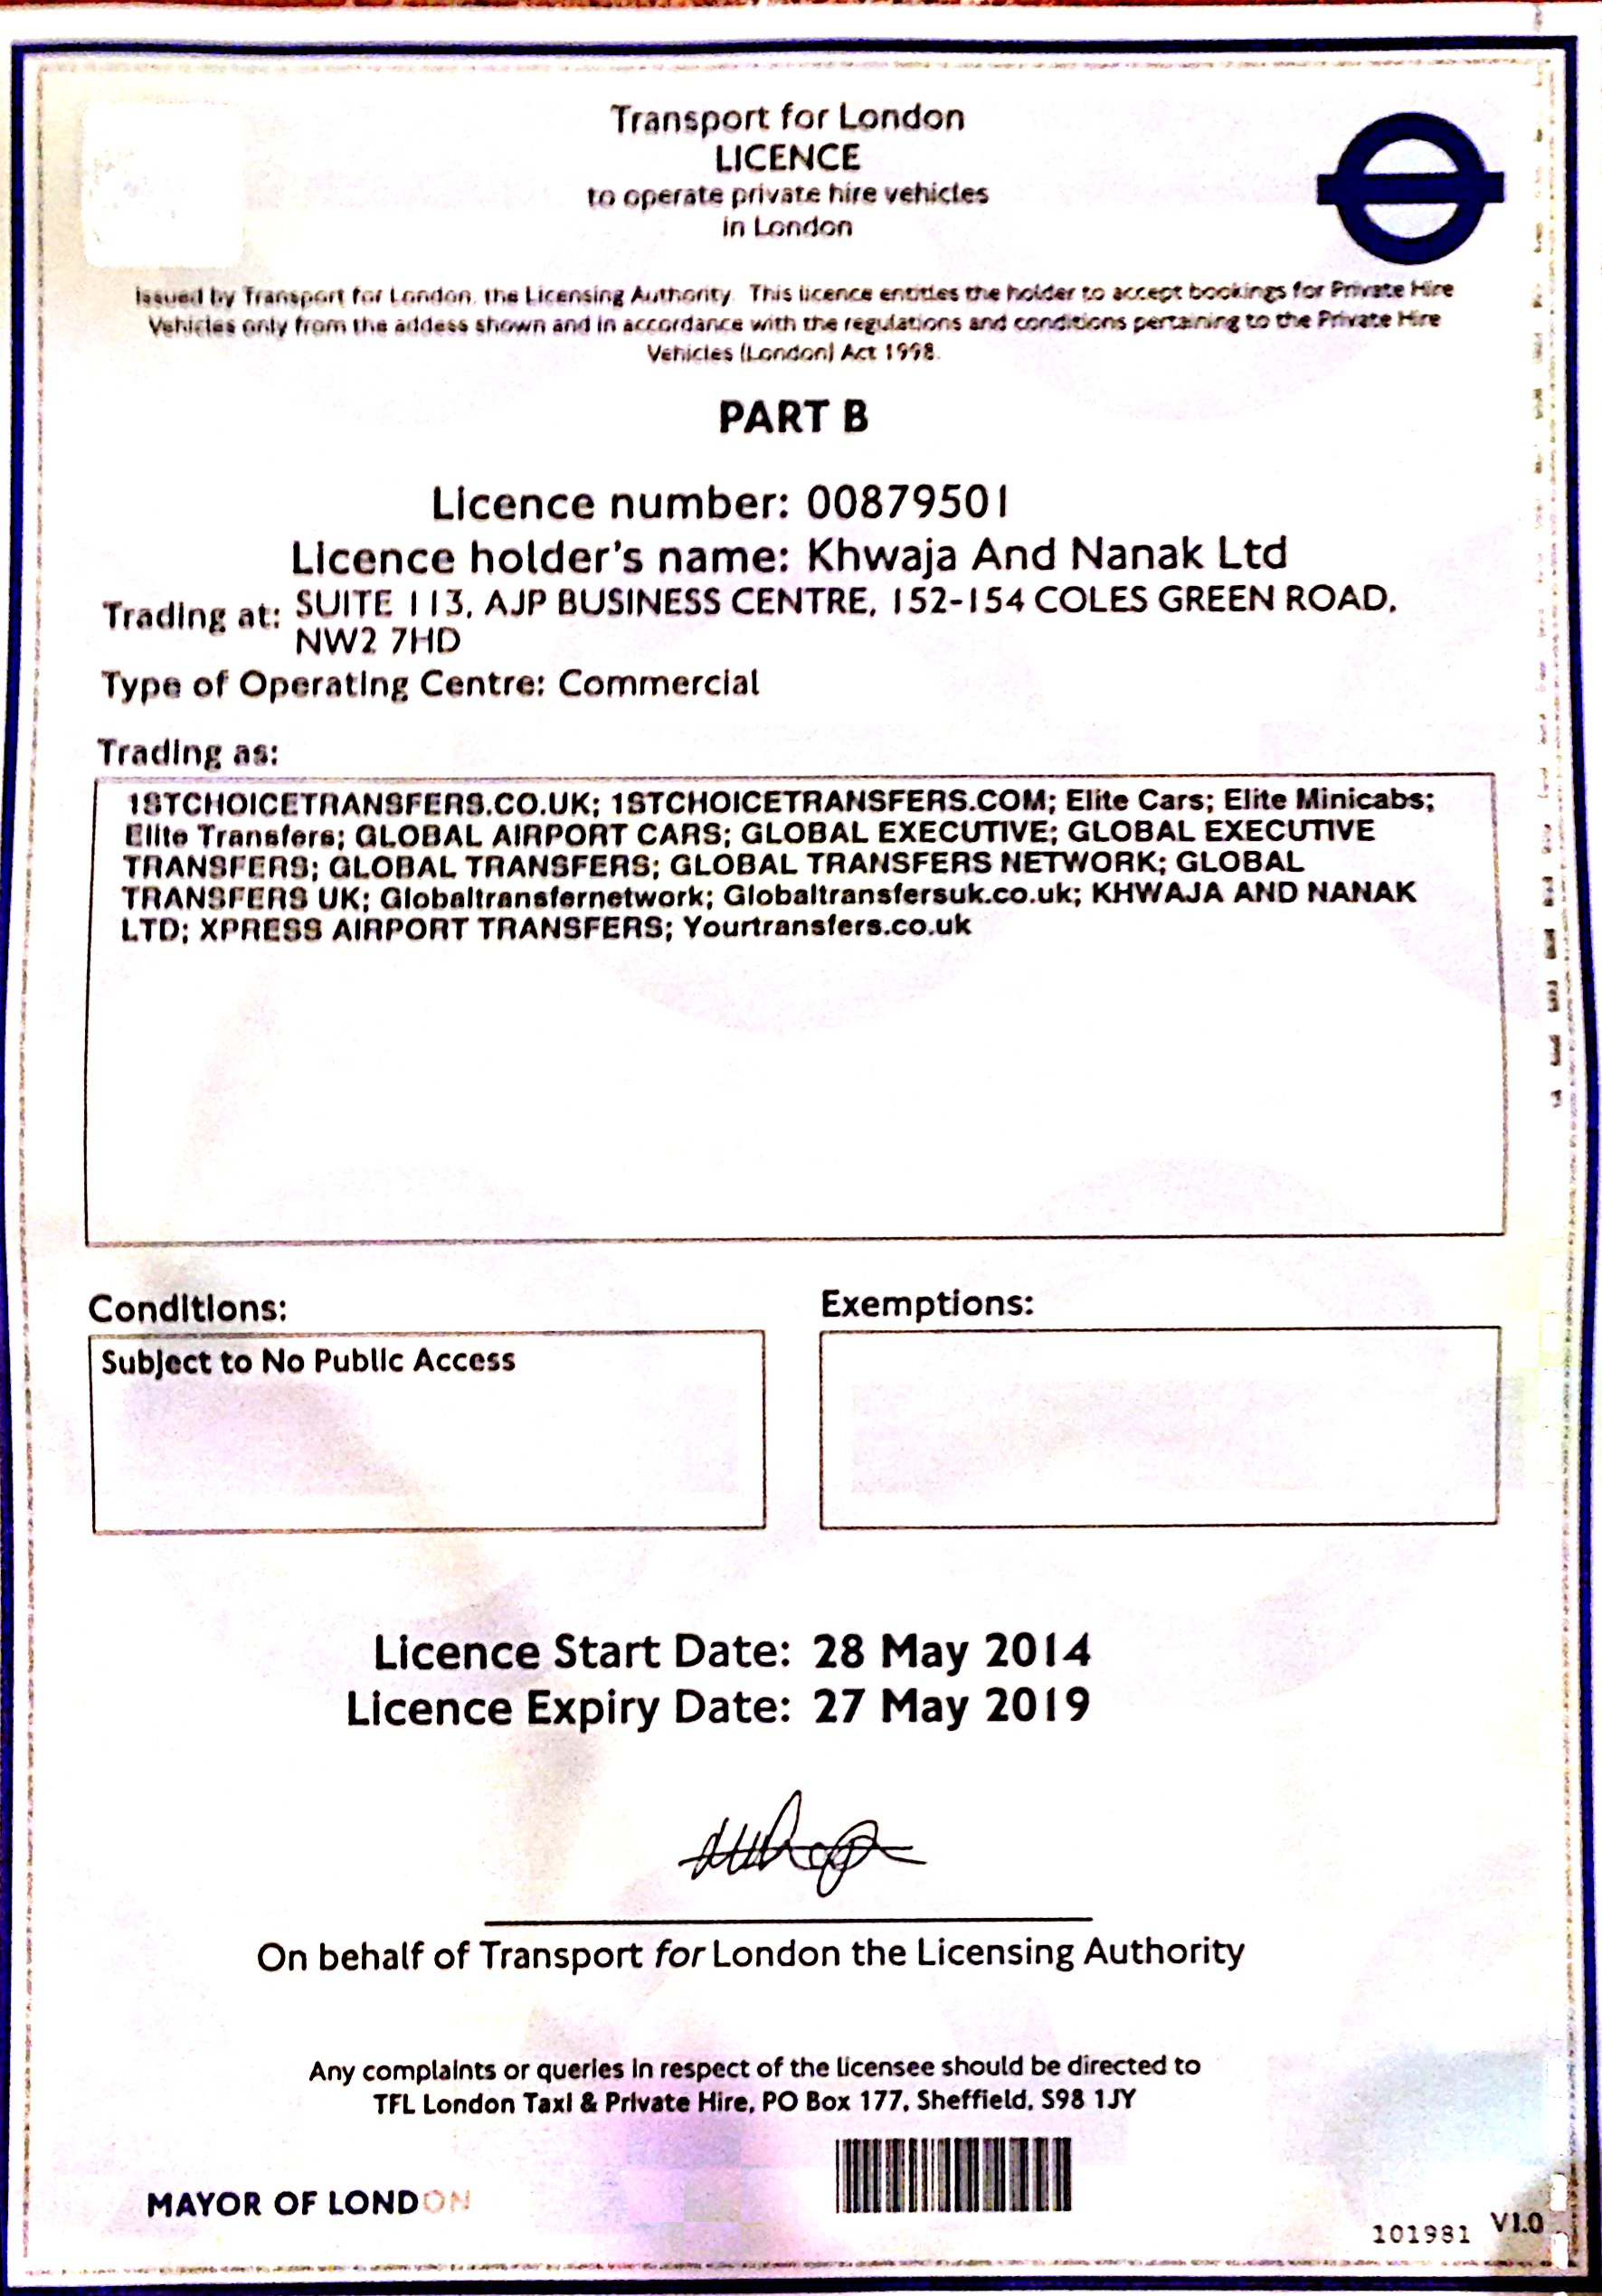 Global Transfers UK transport licence